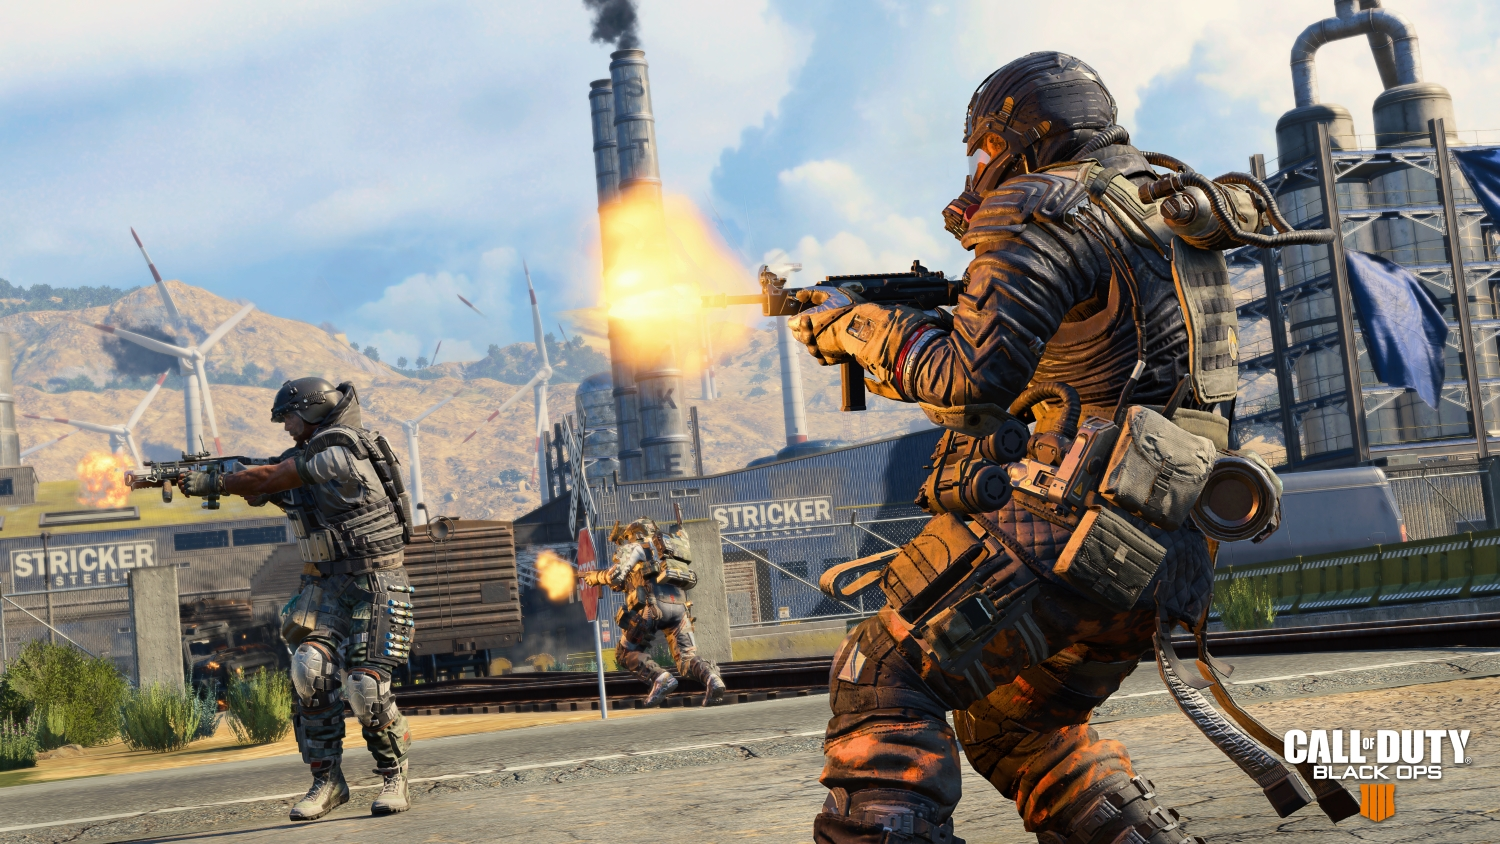 Call Of Duty: Black Ops 4 - Blackout could be the next big thing